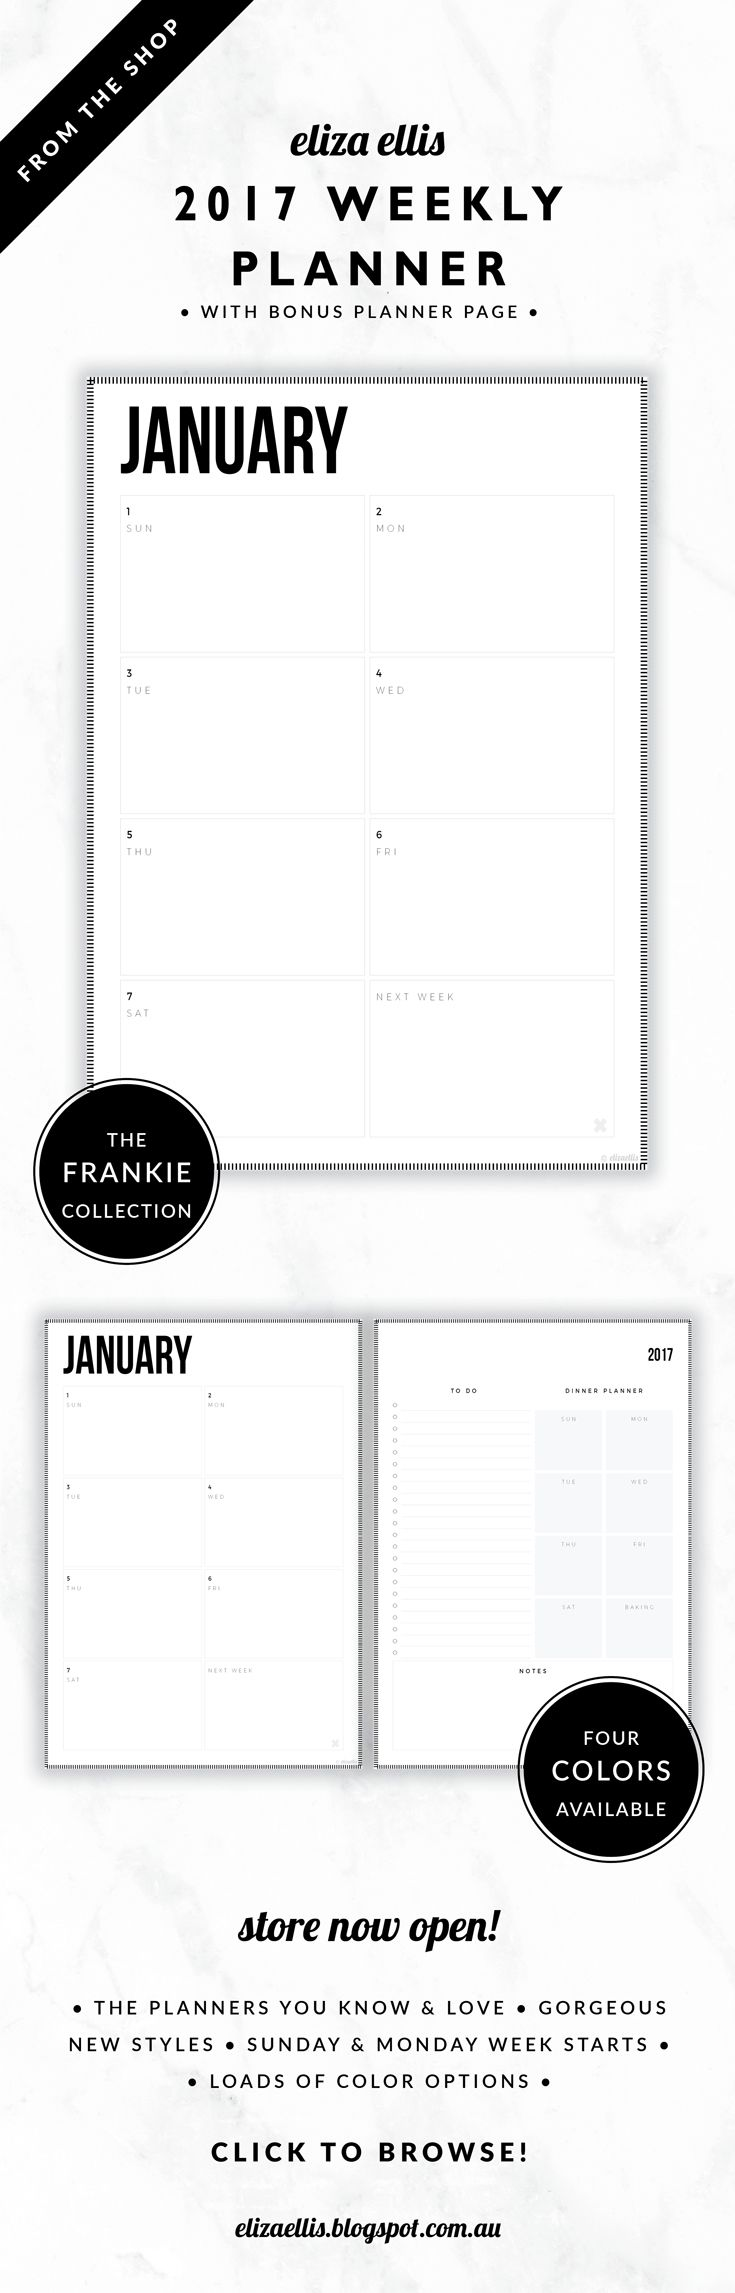 2017 Weekly Planner with Bonus Page // The Frankie Collection by Eliza Ellis. Use as a one page planner or a week to a spread planner with the bonus page. Includes to do list, meal planner and generous notes area. Classic, bold design with hash border. Available in 4 colors –  silk, mist, smoke and bone. Monday and Sunday week starts included. Documents print to A4 or A5.